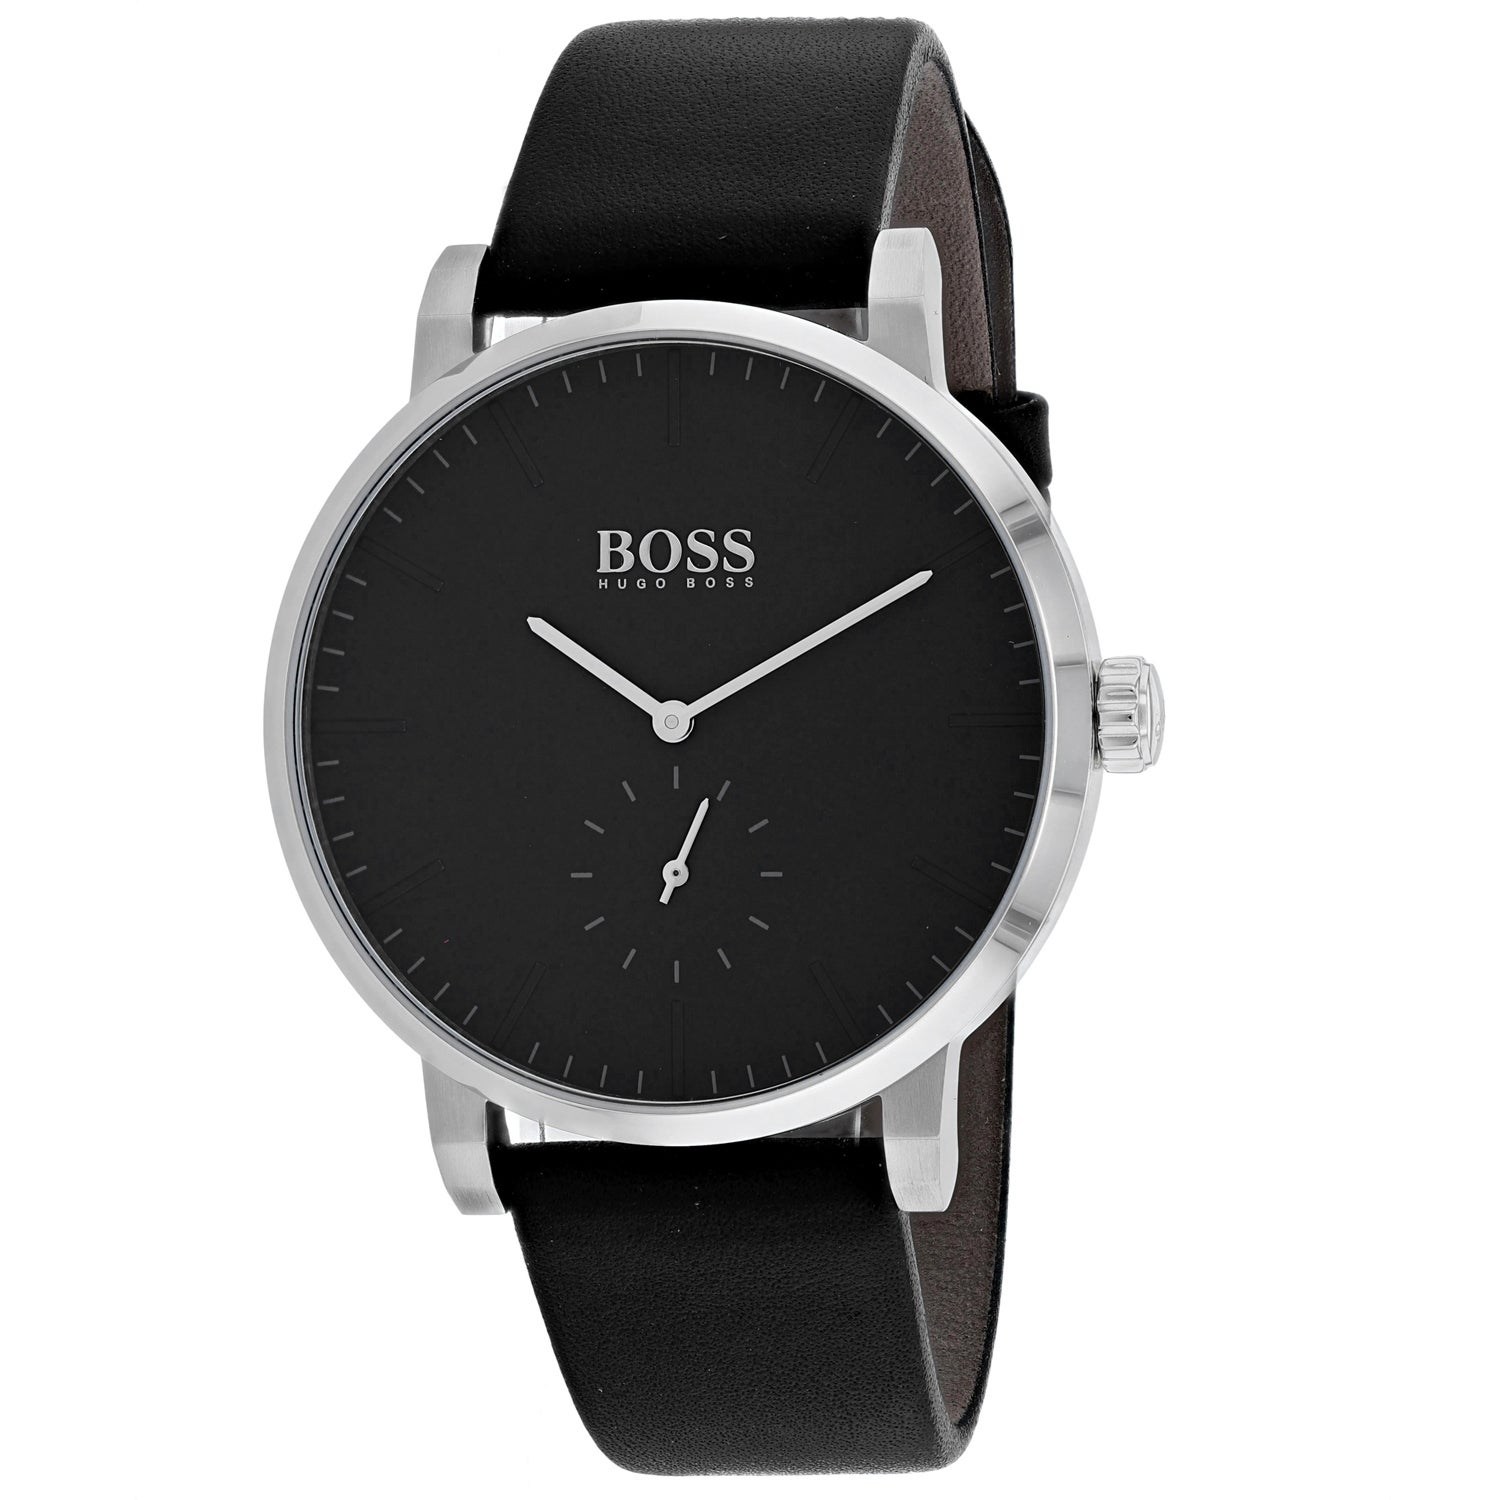 HUGO BOSS Watch solotempo black leather strap 1513500